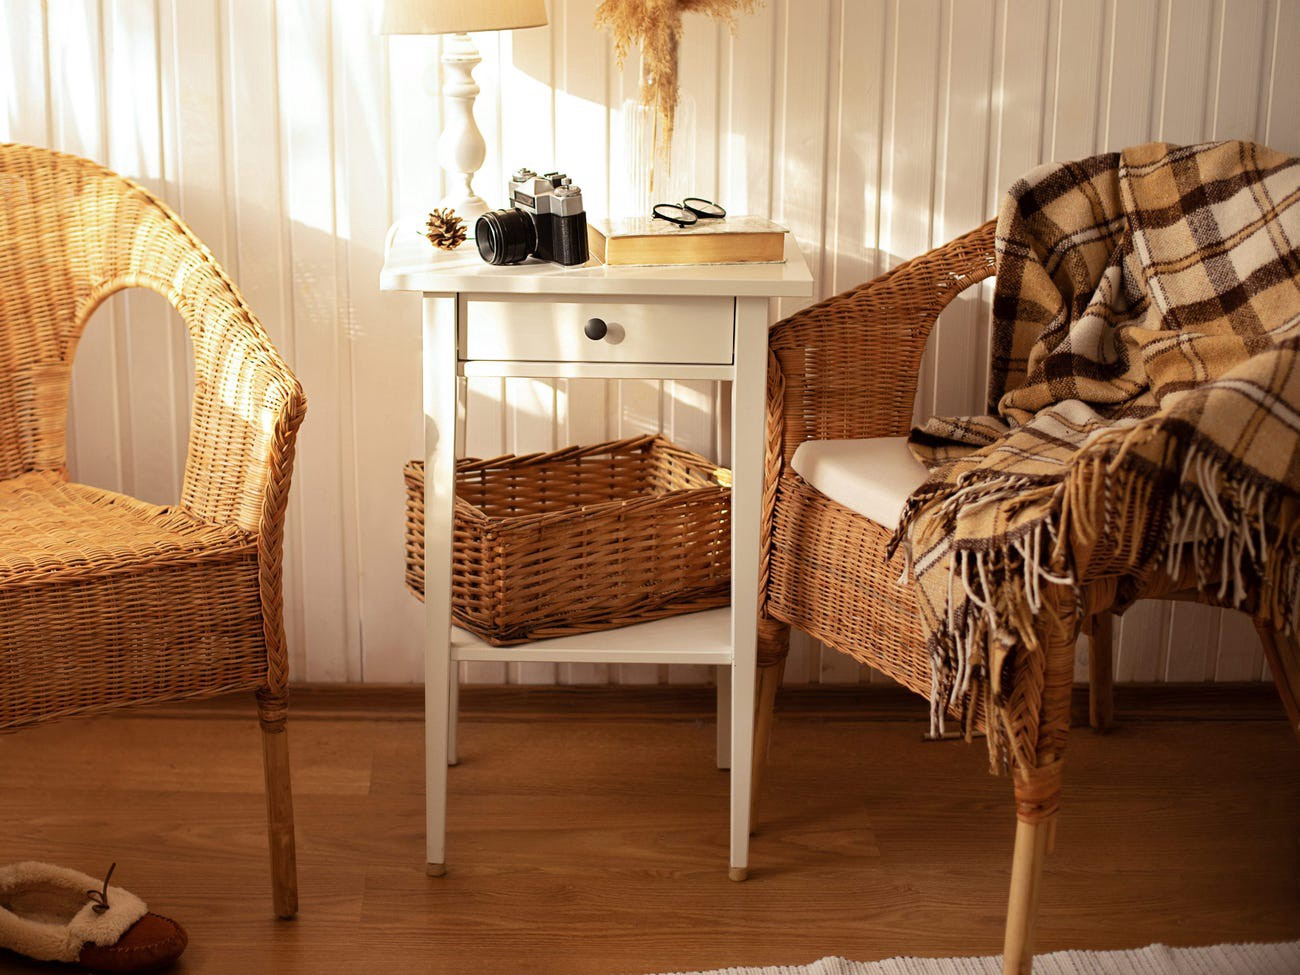 Wicker furniture.